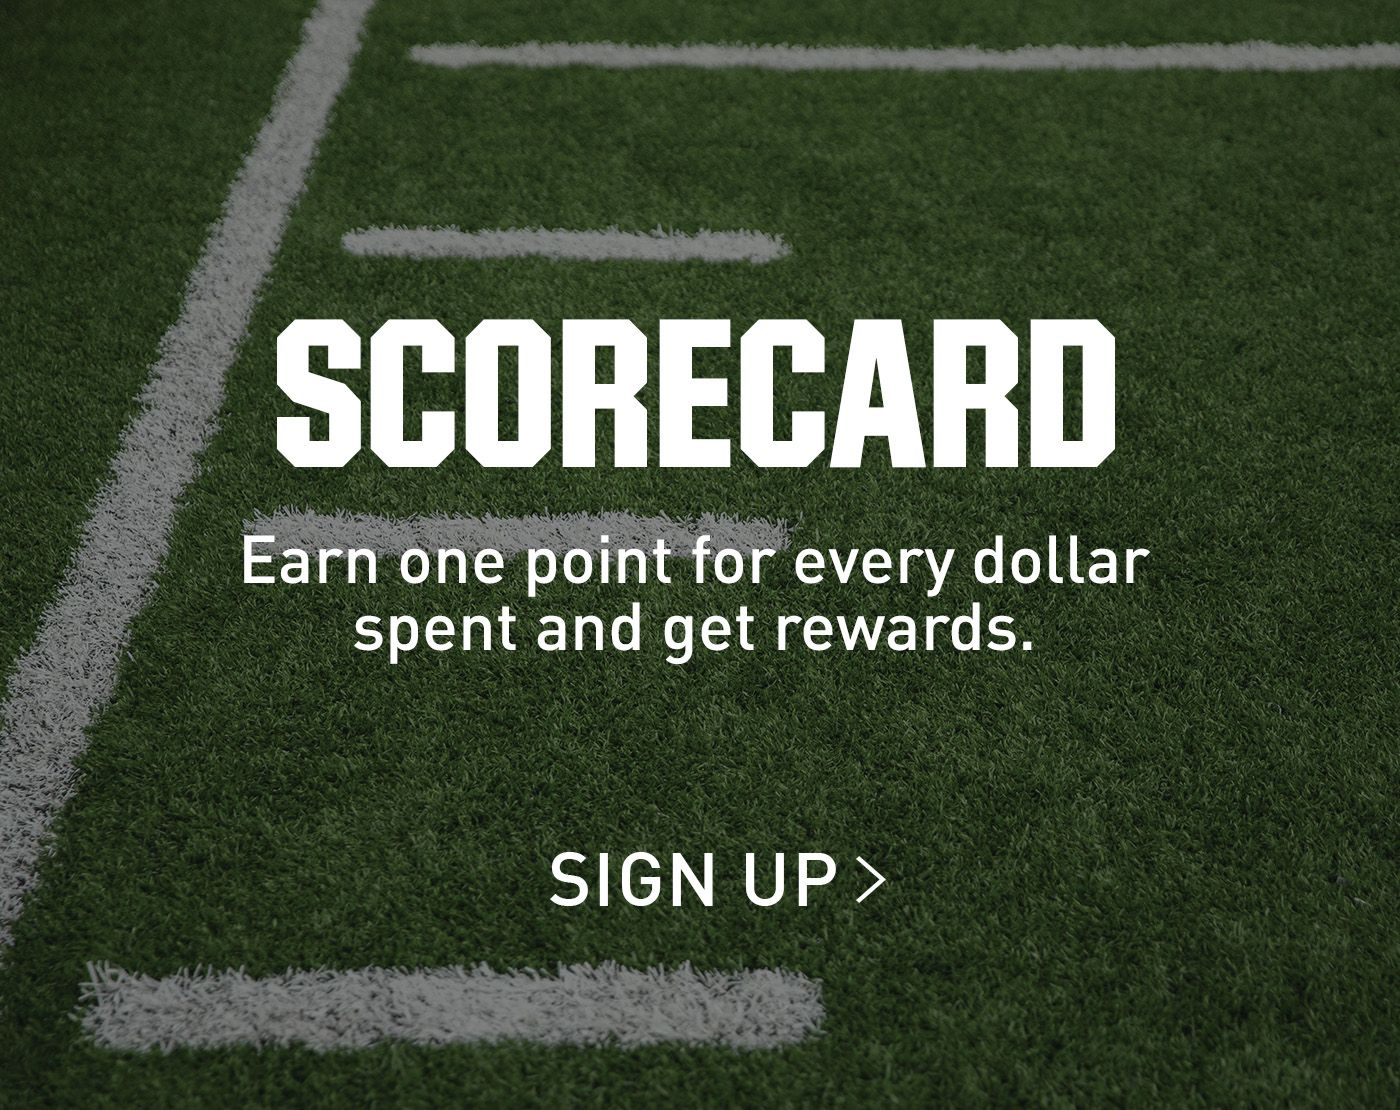 Earn one point for every dollar spent and get rewards